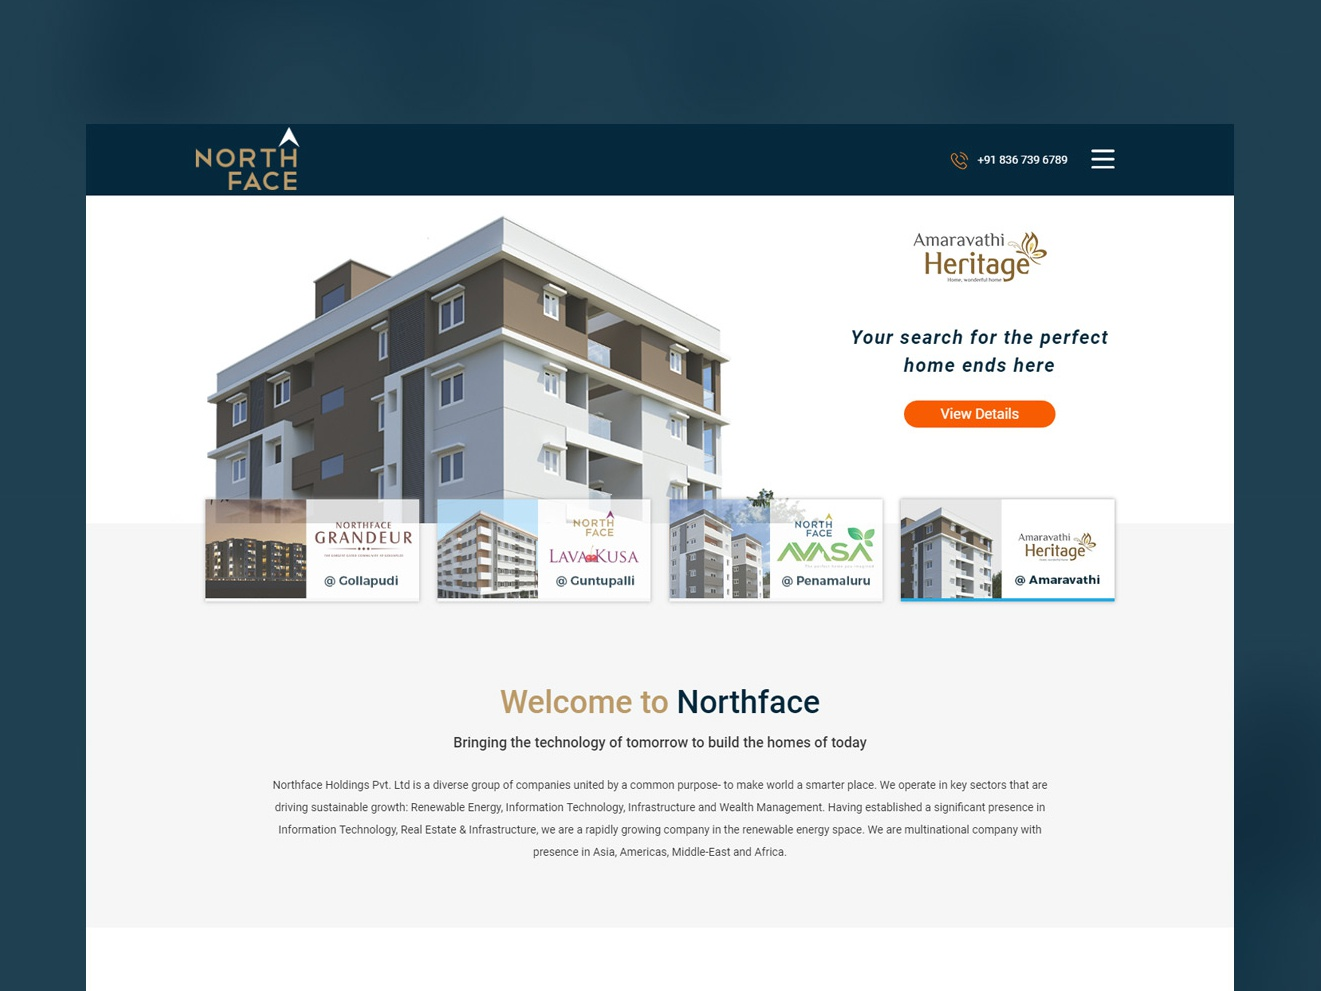 North Face indian real estate real estate india design indian ad campaign website design ui ux design app design best ui ux solution design work